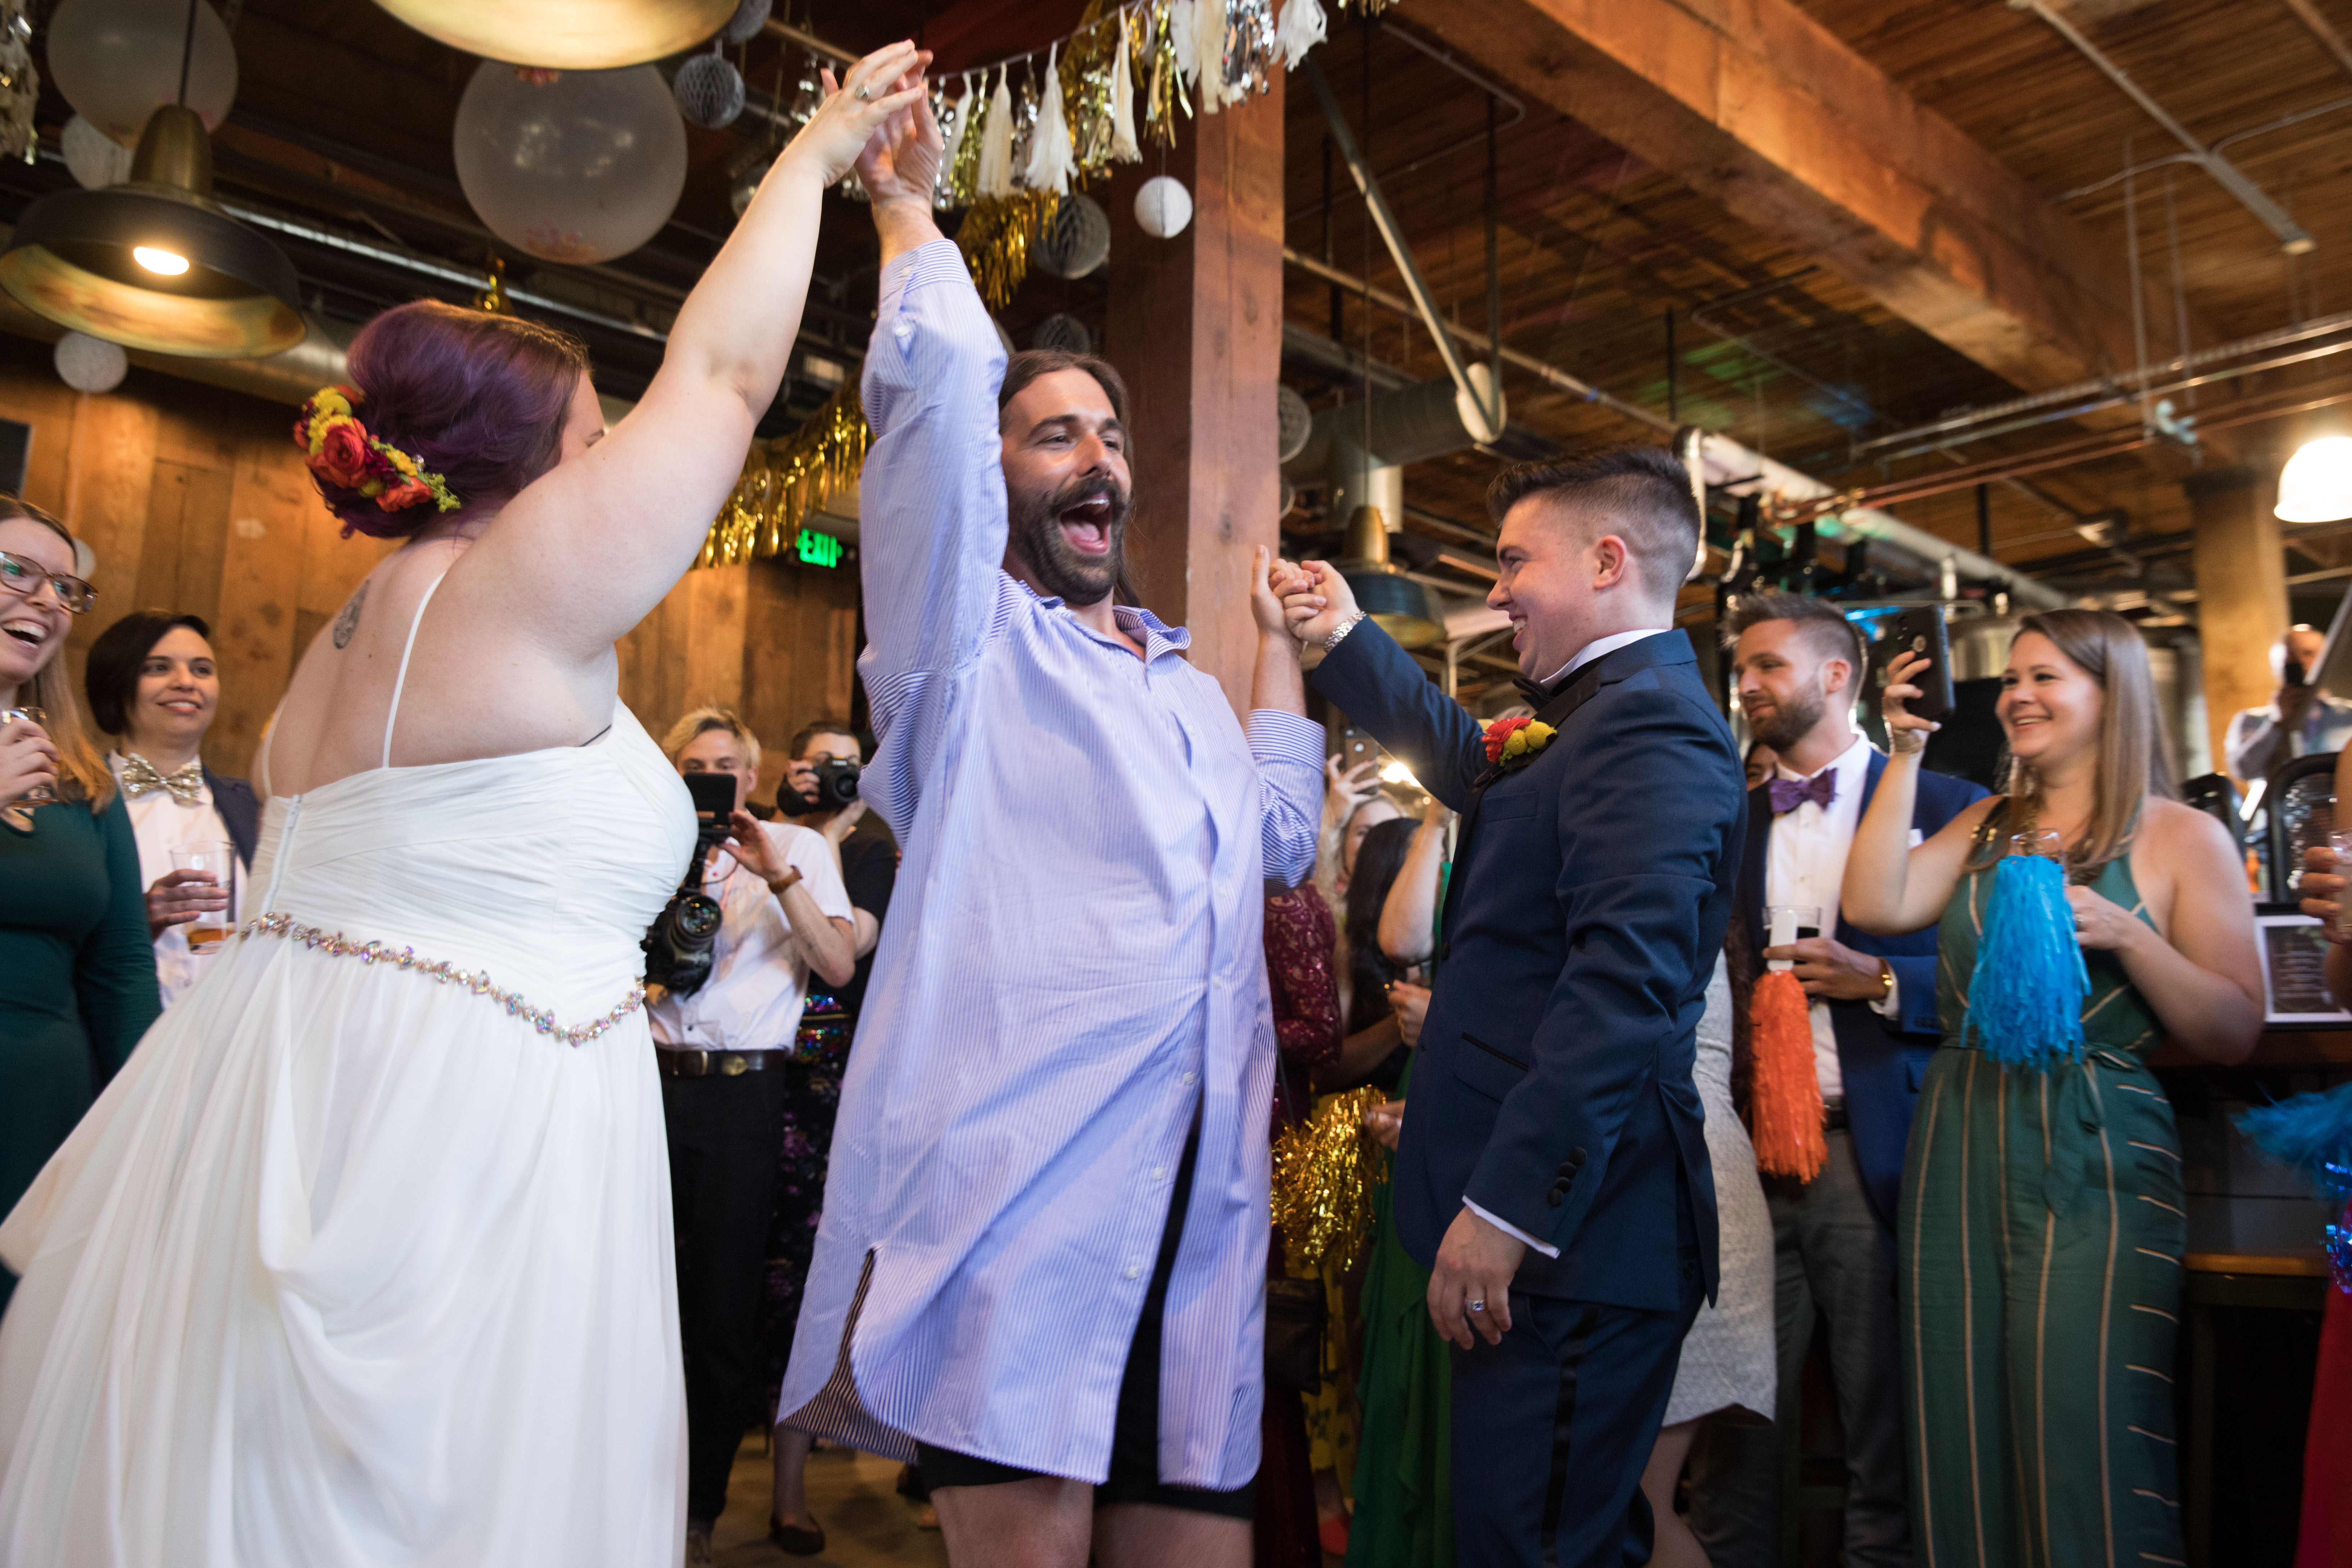 CAN YOU EVEN BELIEVE?!{ } Jonathan Van Ness celebrates with newlywed #MarryUsJVN contest winners, Megan and Haden, at Elysian Brewings Capitol Hill brewpub in Seattle on June 4, 2019. (Photo by Matt Mills McKnight/Invision for Elysian Brewing/AP Images)